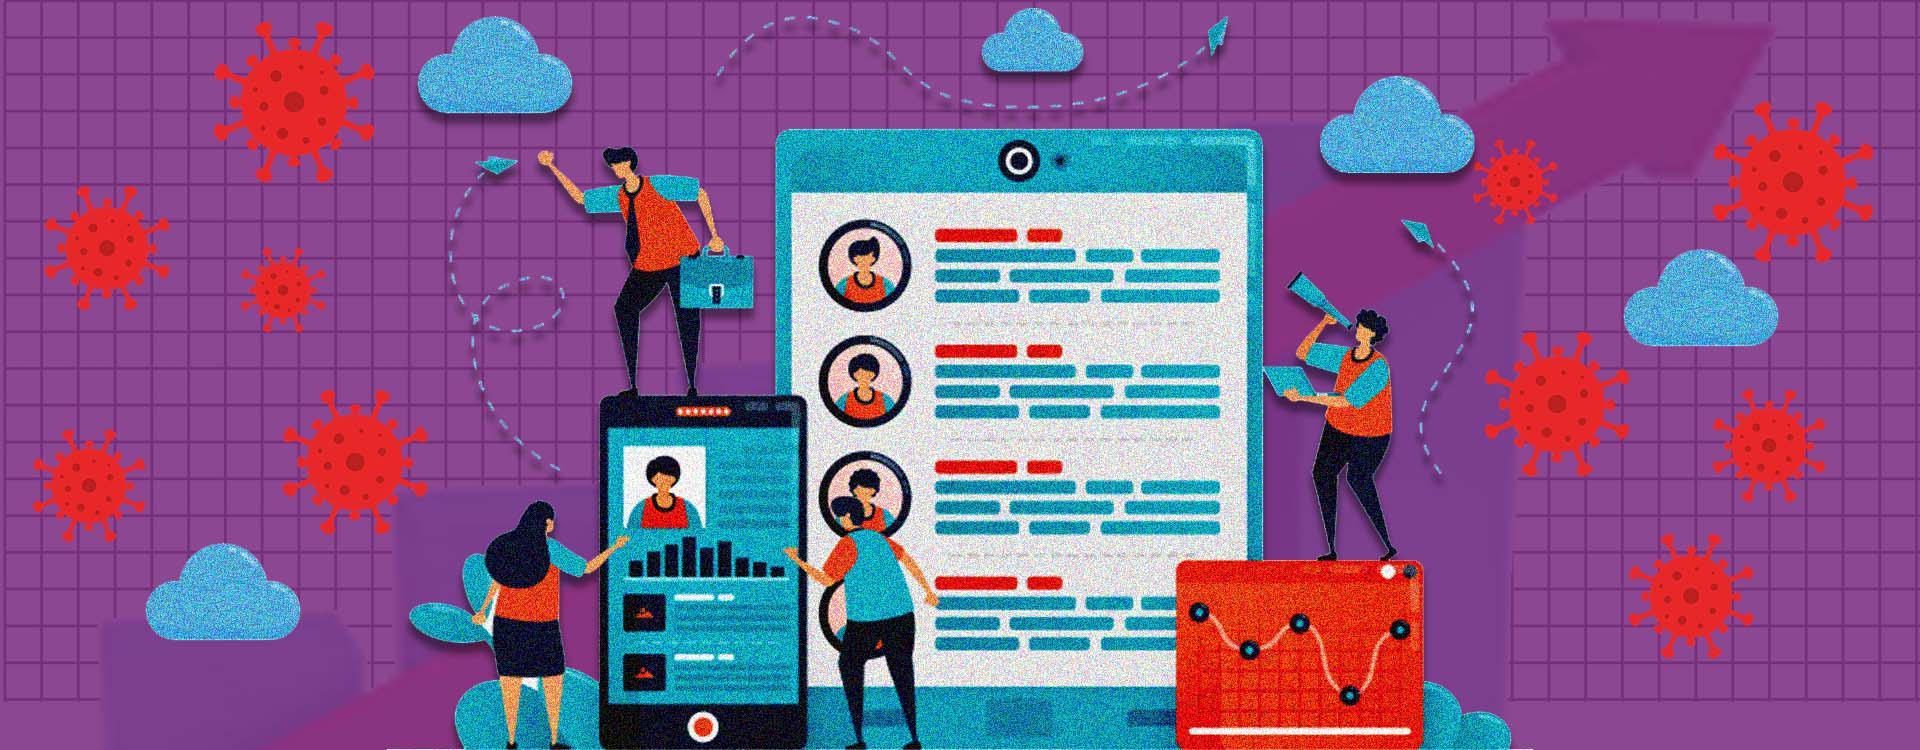 Indian startups have seen a hiring spree with skills in cybersecurity, cloud computing, AI,etc